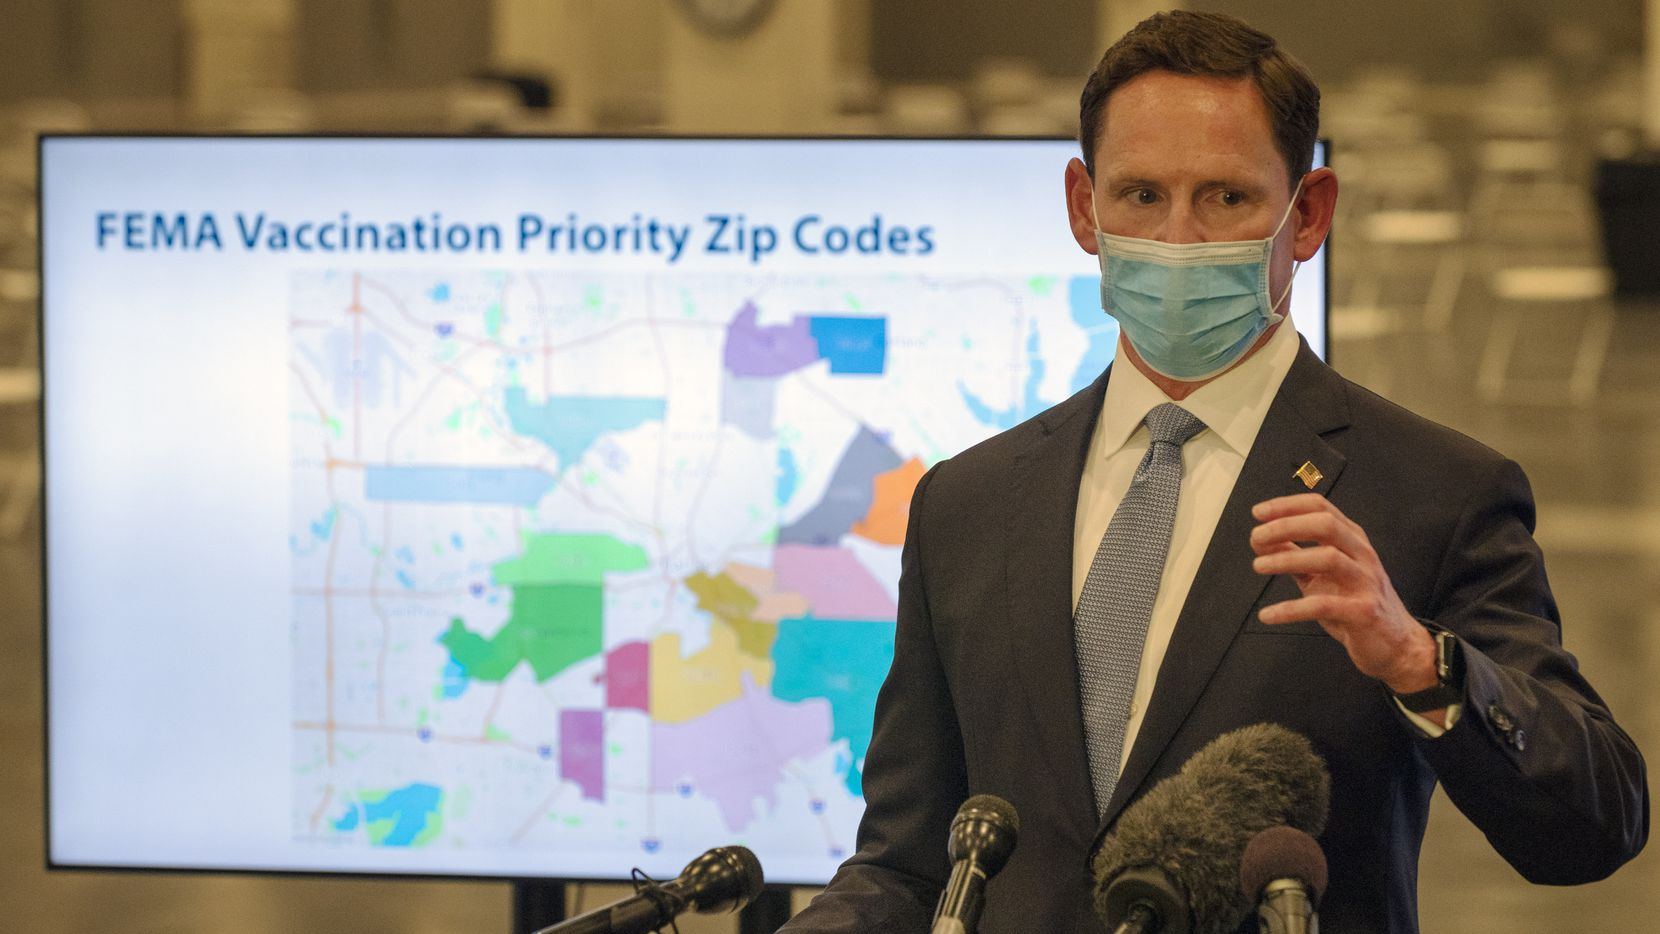 Dallas County Judge Clay Jenkins conducts a press conference about the COVID-19 vaccine operations with FEMA, on Tuesday, Feb. 23, 2021 at Fair Park in Dallas.